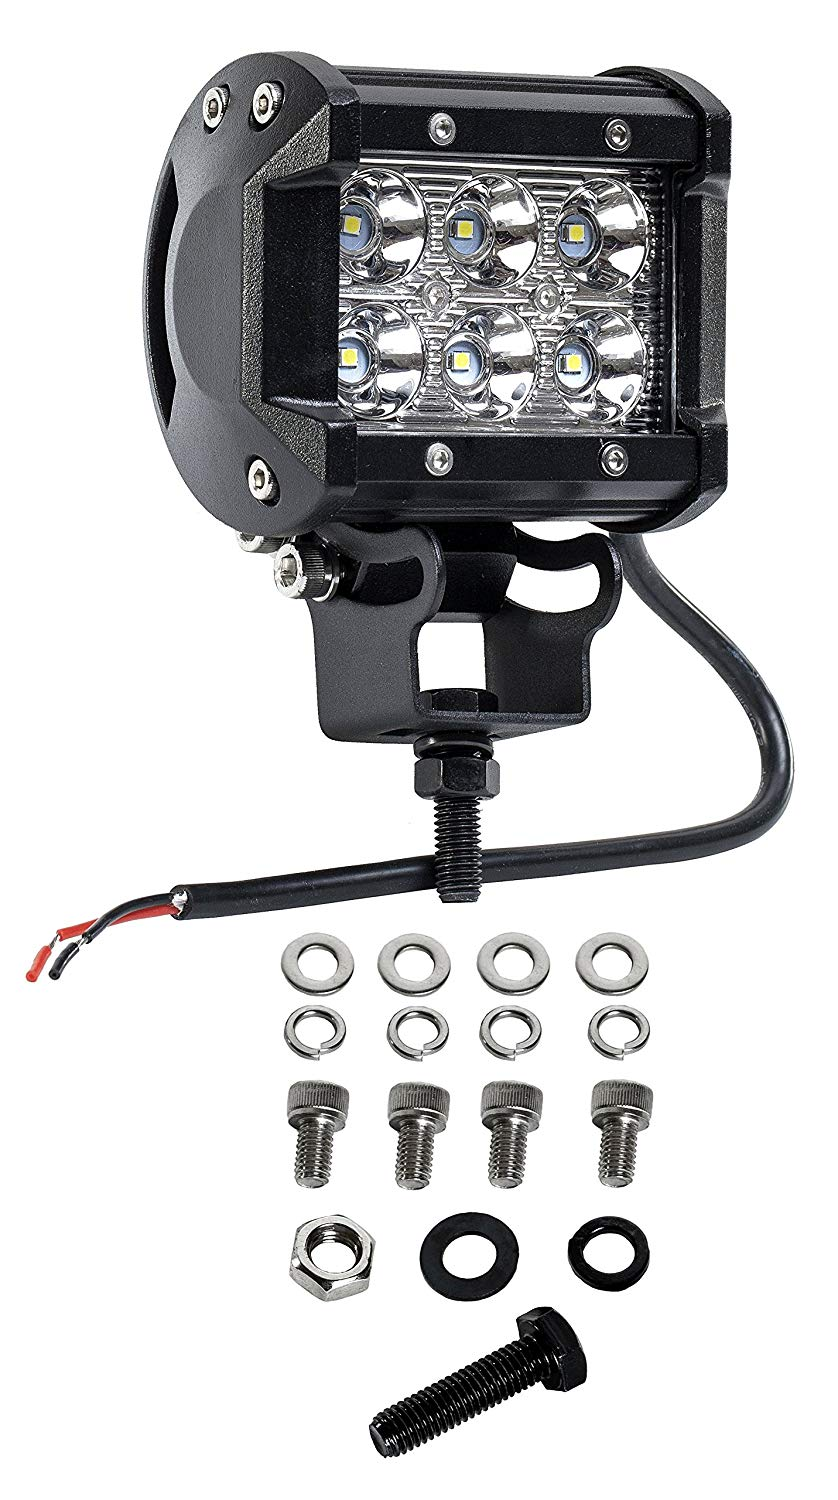 Cutequeen 4 X 18w 1800 Lumens Cree LED Spot Light for Off-road